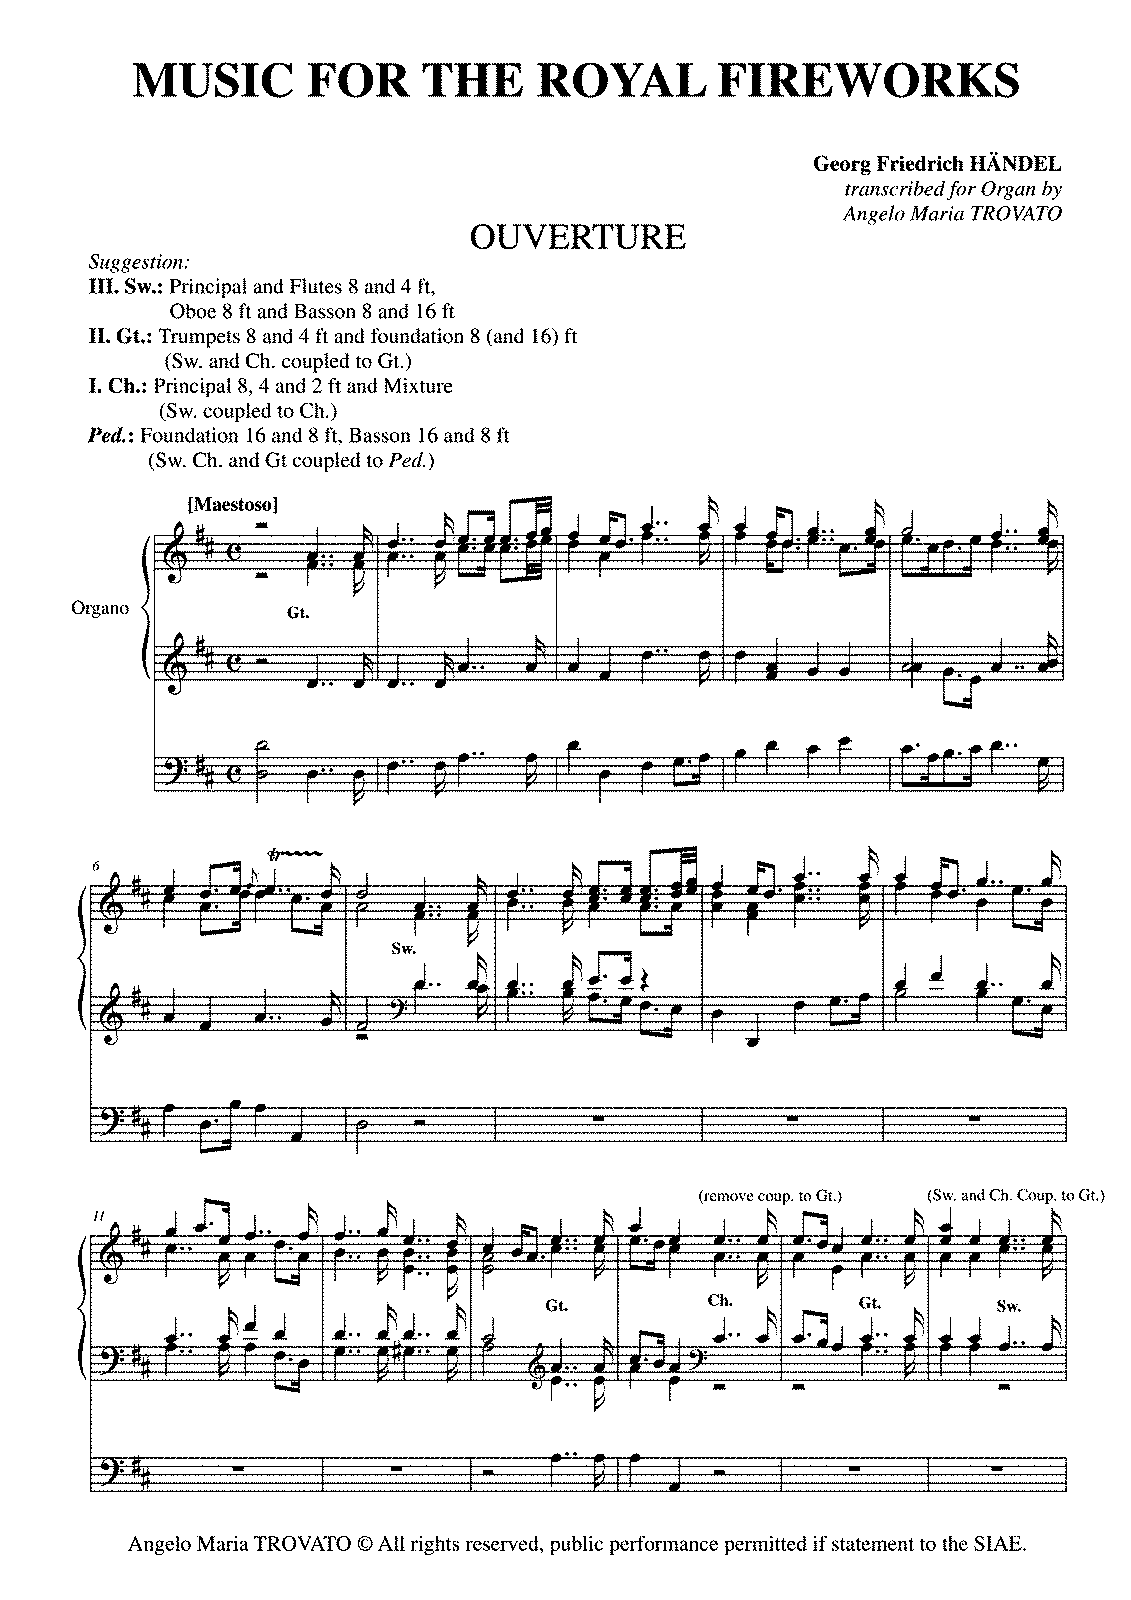 PMLP12548-Music for the Royal Fireworks (trascr. for Organ AMT) - G.F. Handel.pdf